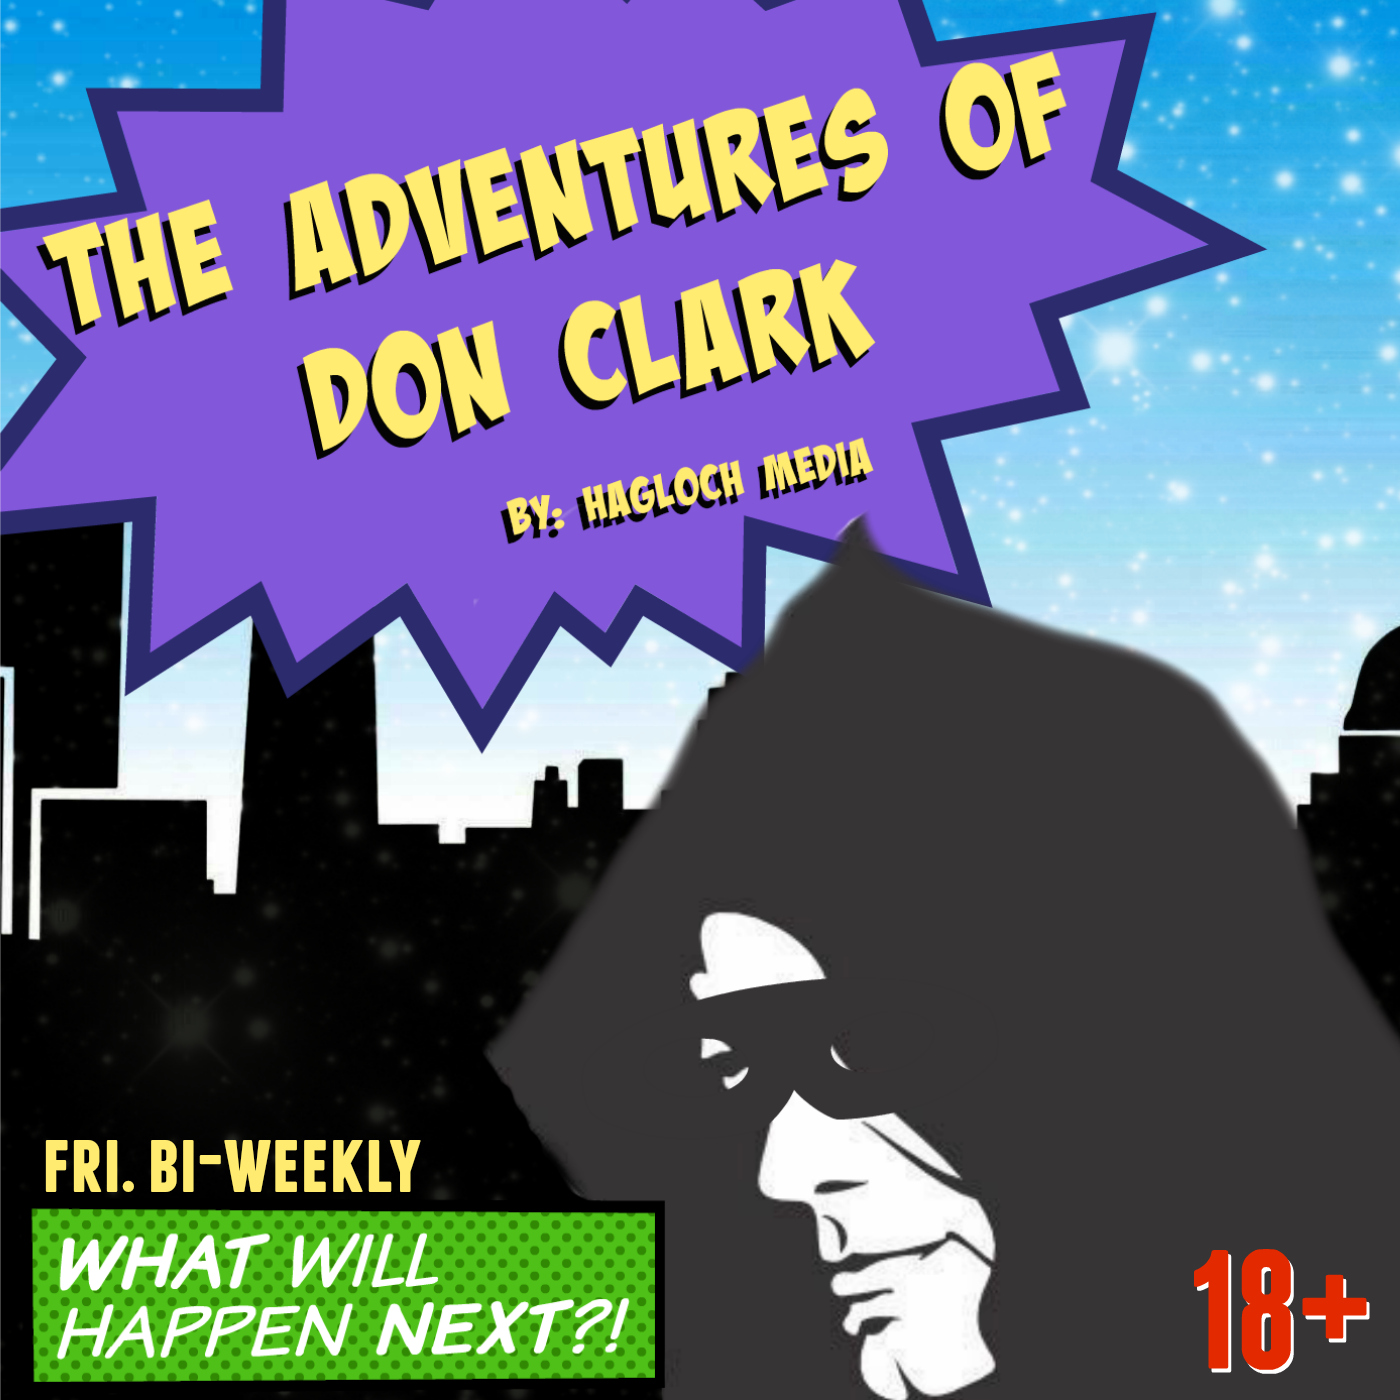 The Adventures Of Don Clark I The Audio Drama show art